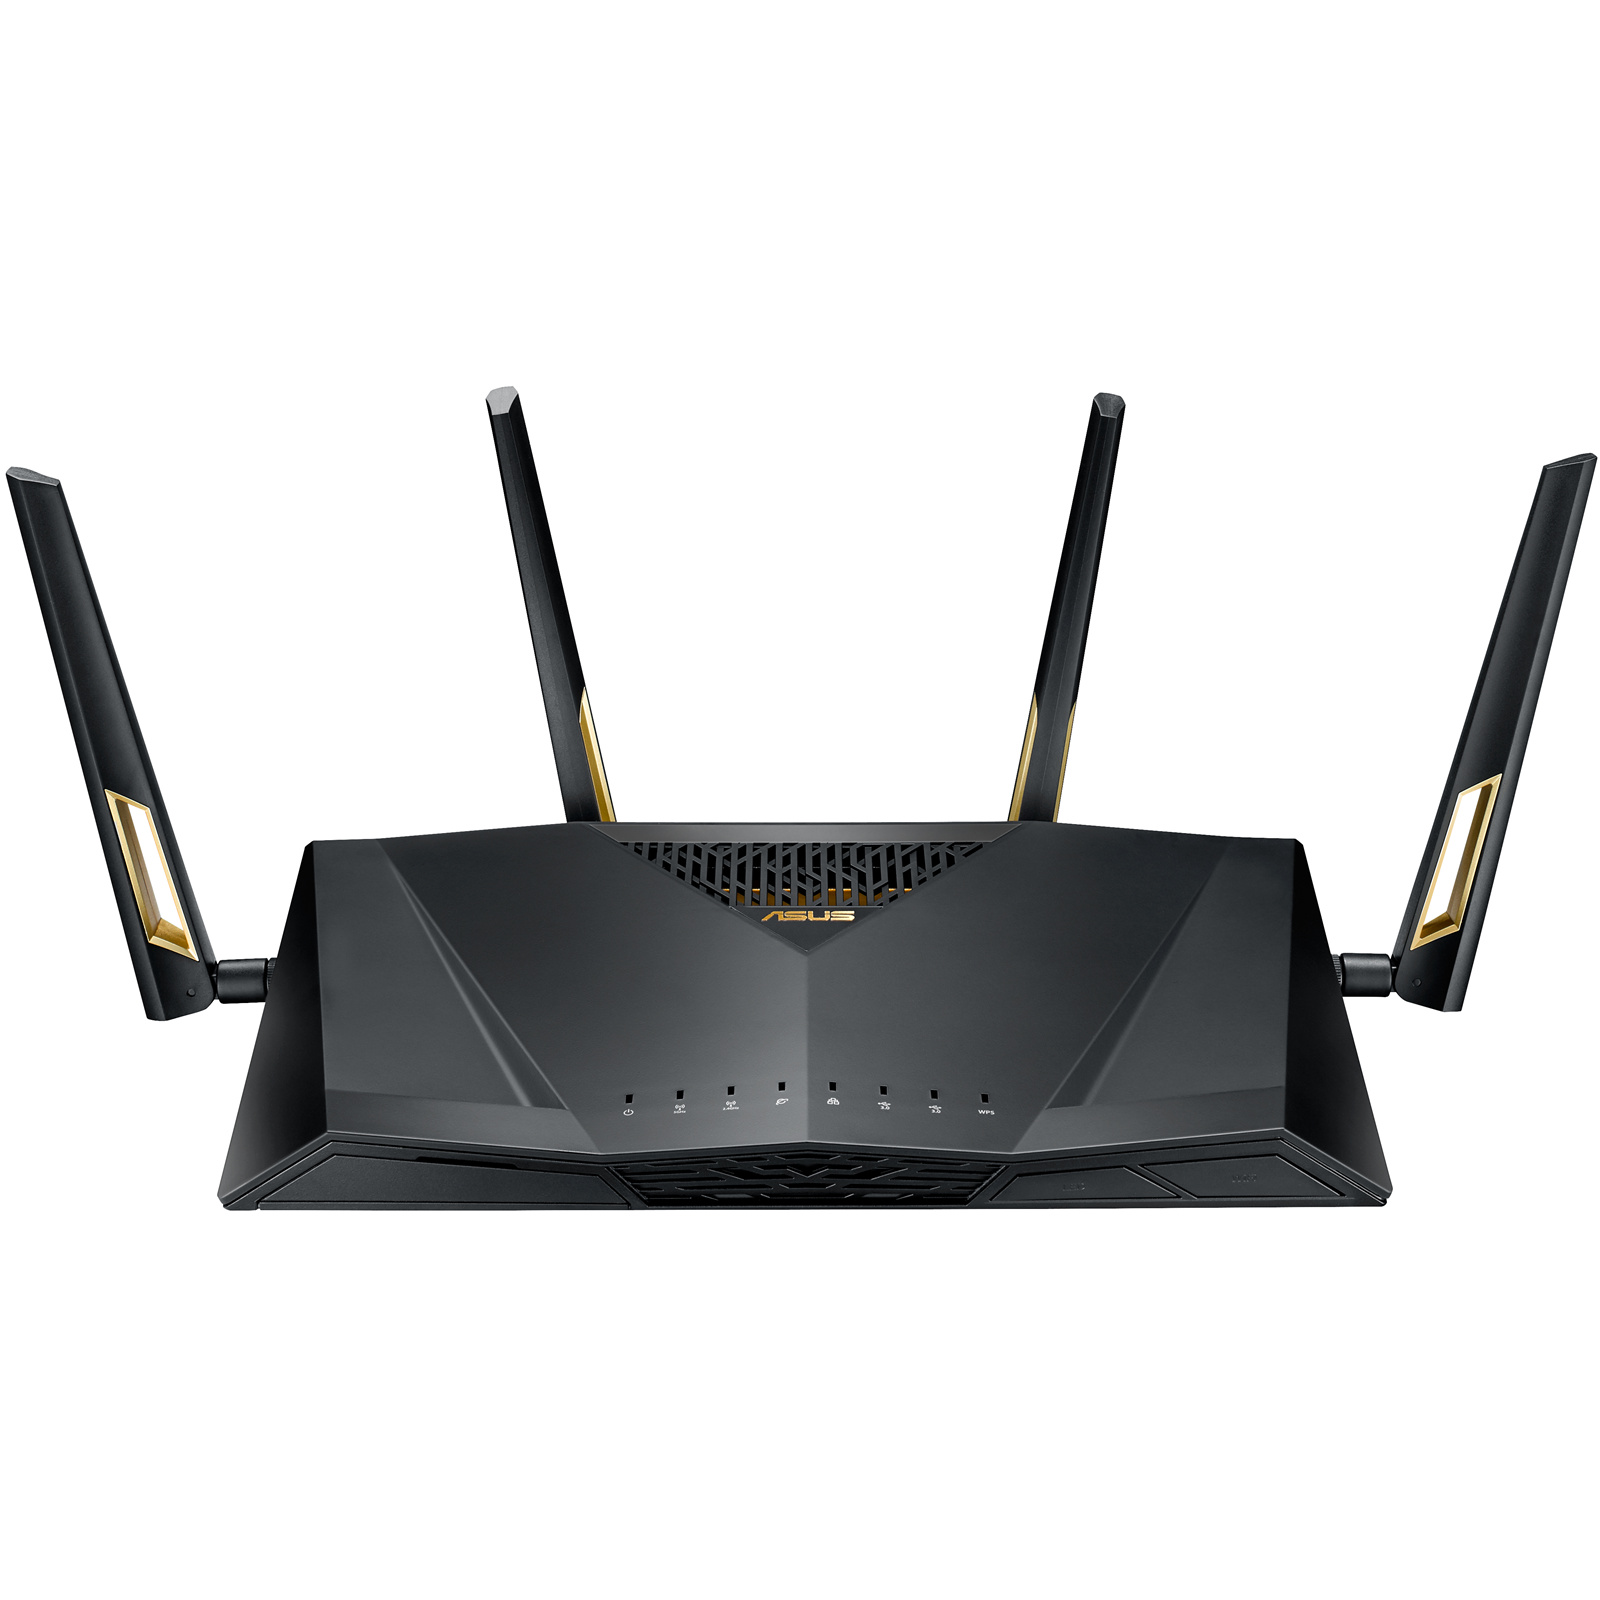 c0197ee844 Buy the ASUS RT-AX88U MU-MIMO Gigabit Wi-Fi Gaming Router